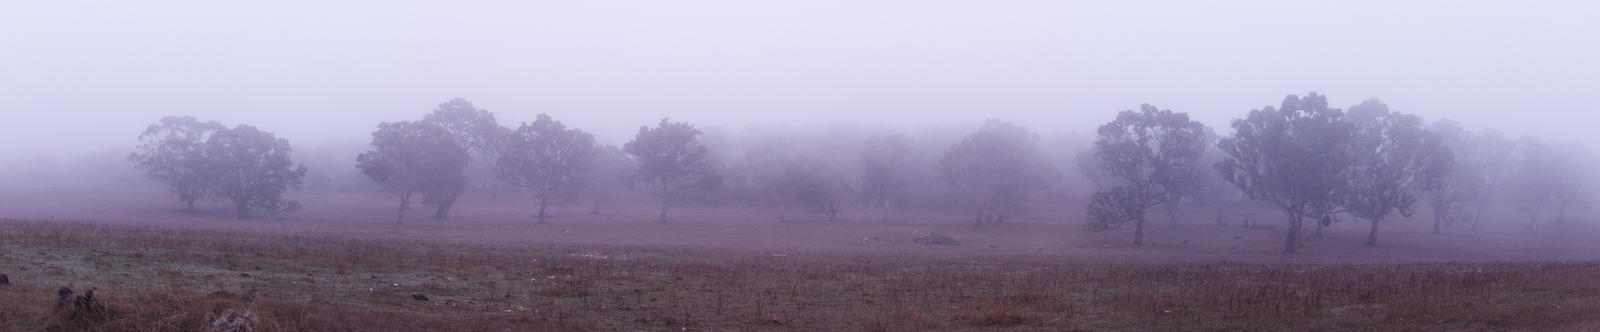 Mt Torrens Fog by darksidelemm